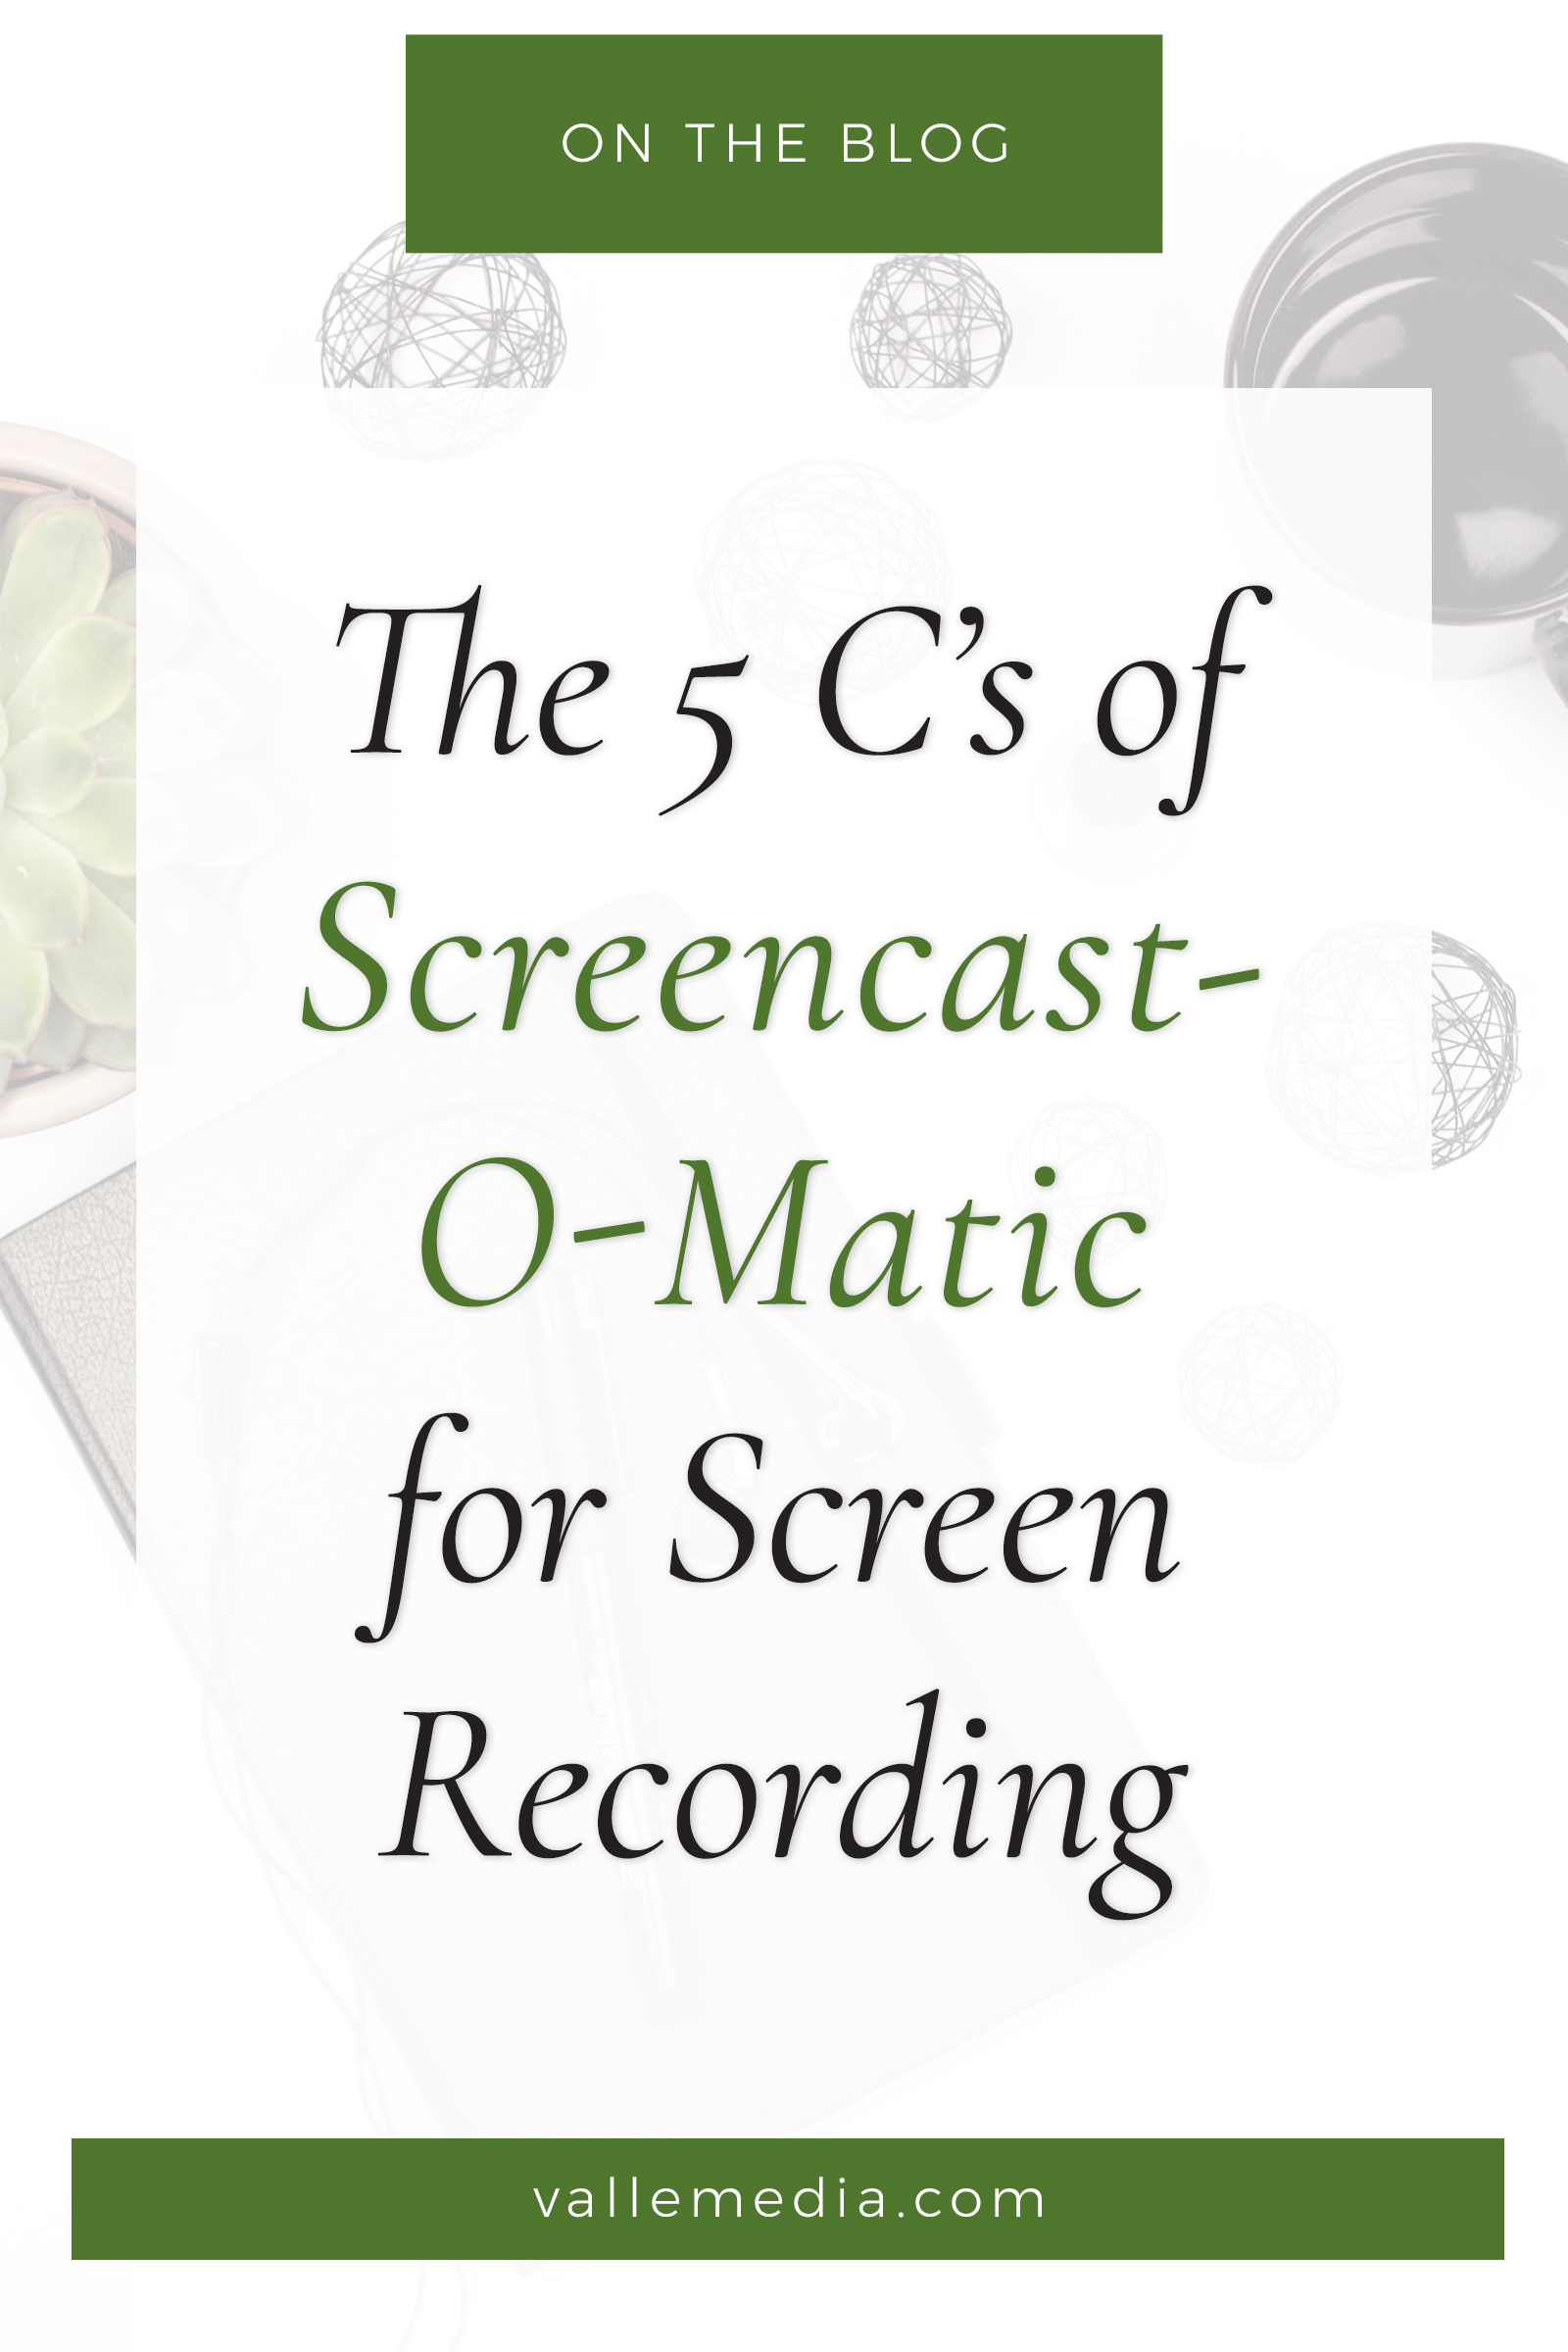 Screencast-O-Matic is a screen recording tool that can be used via app or right in a browser. To celebrate my 1000th screen recording, here are the 5 C\'s to why I love Screencast-O-Matic.